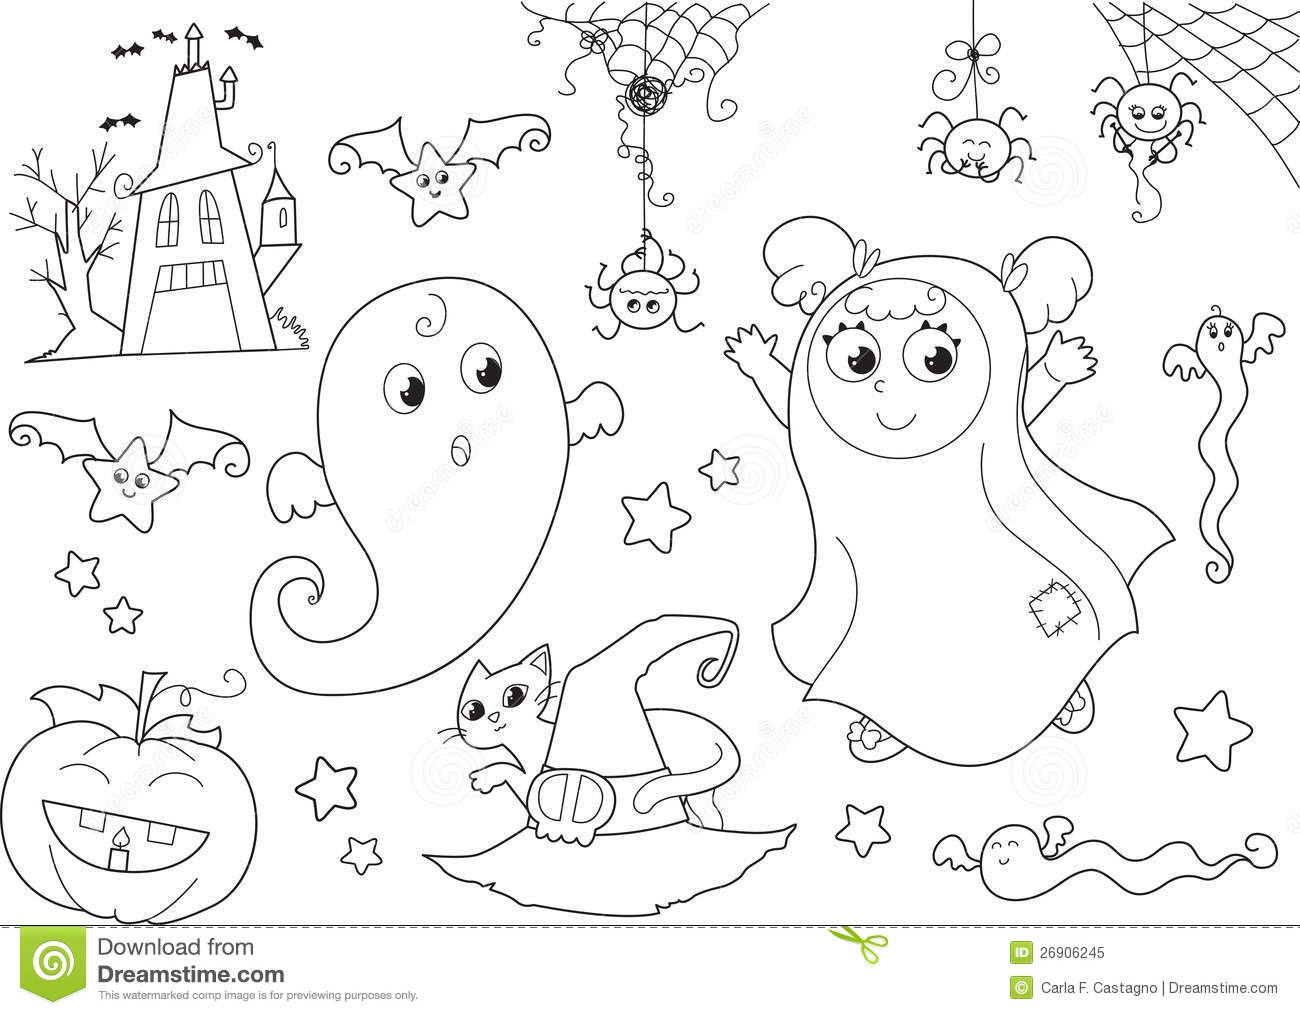 halloween coloring page for little kids royalty free stock photo